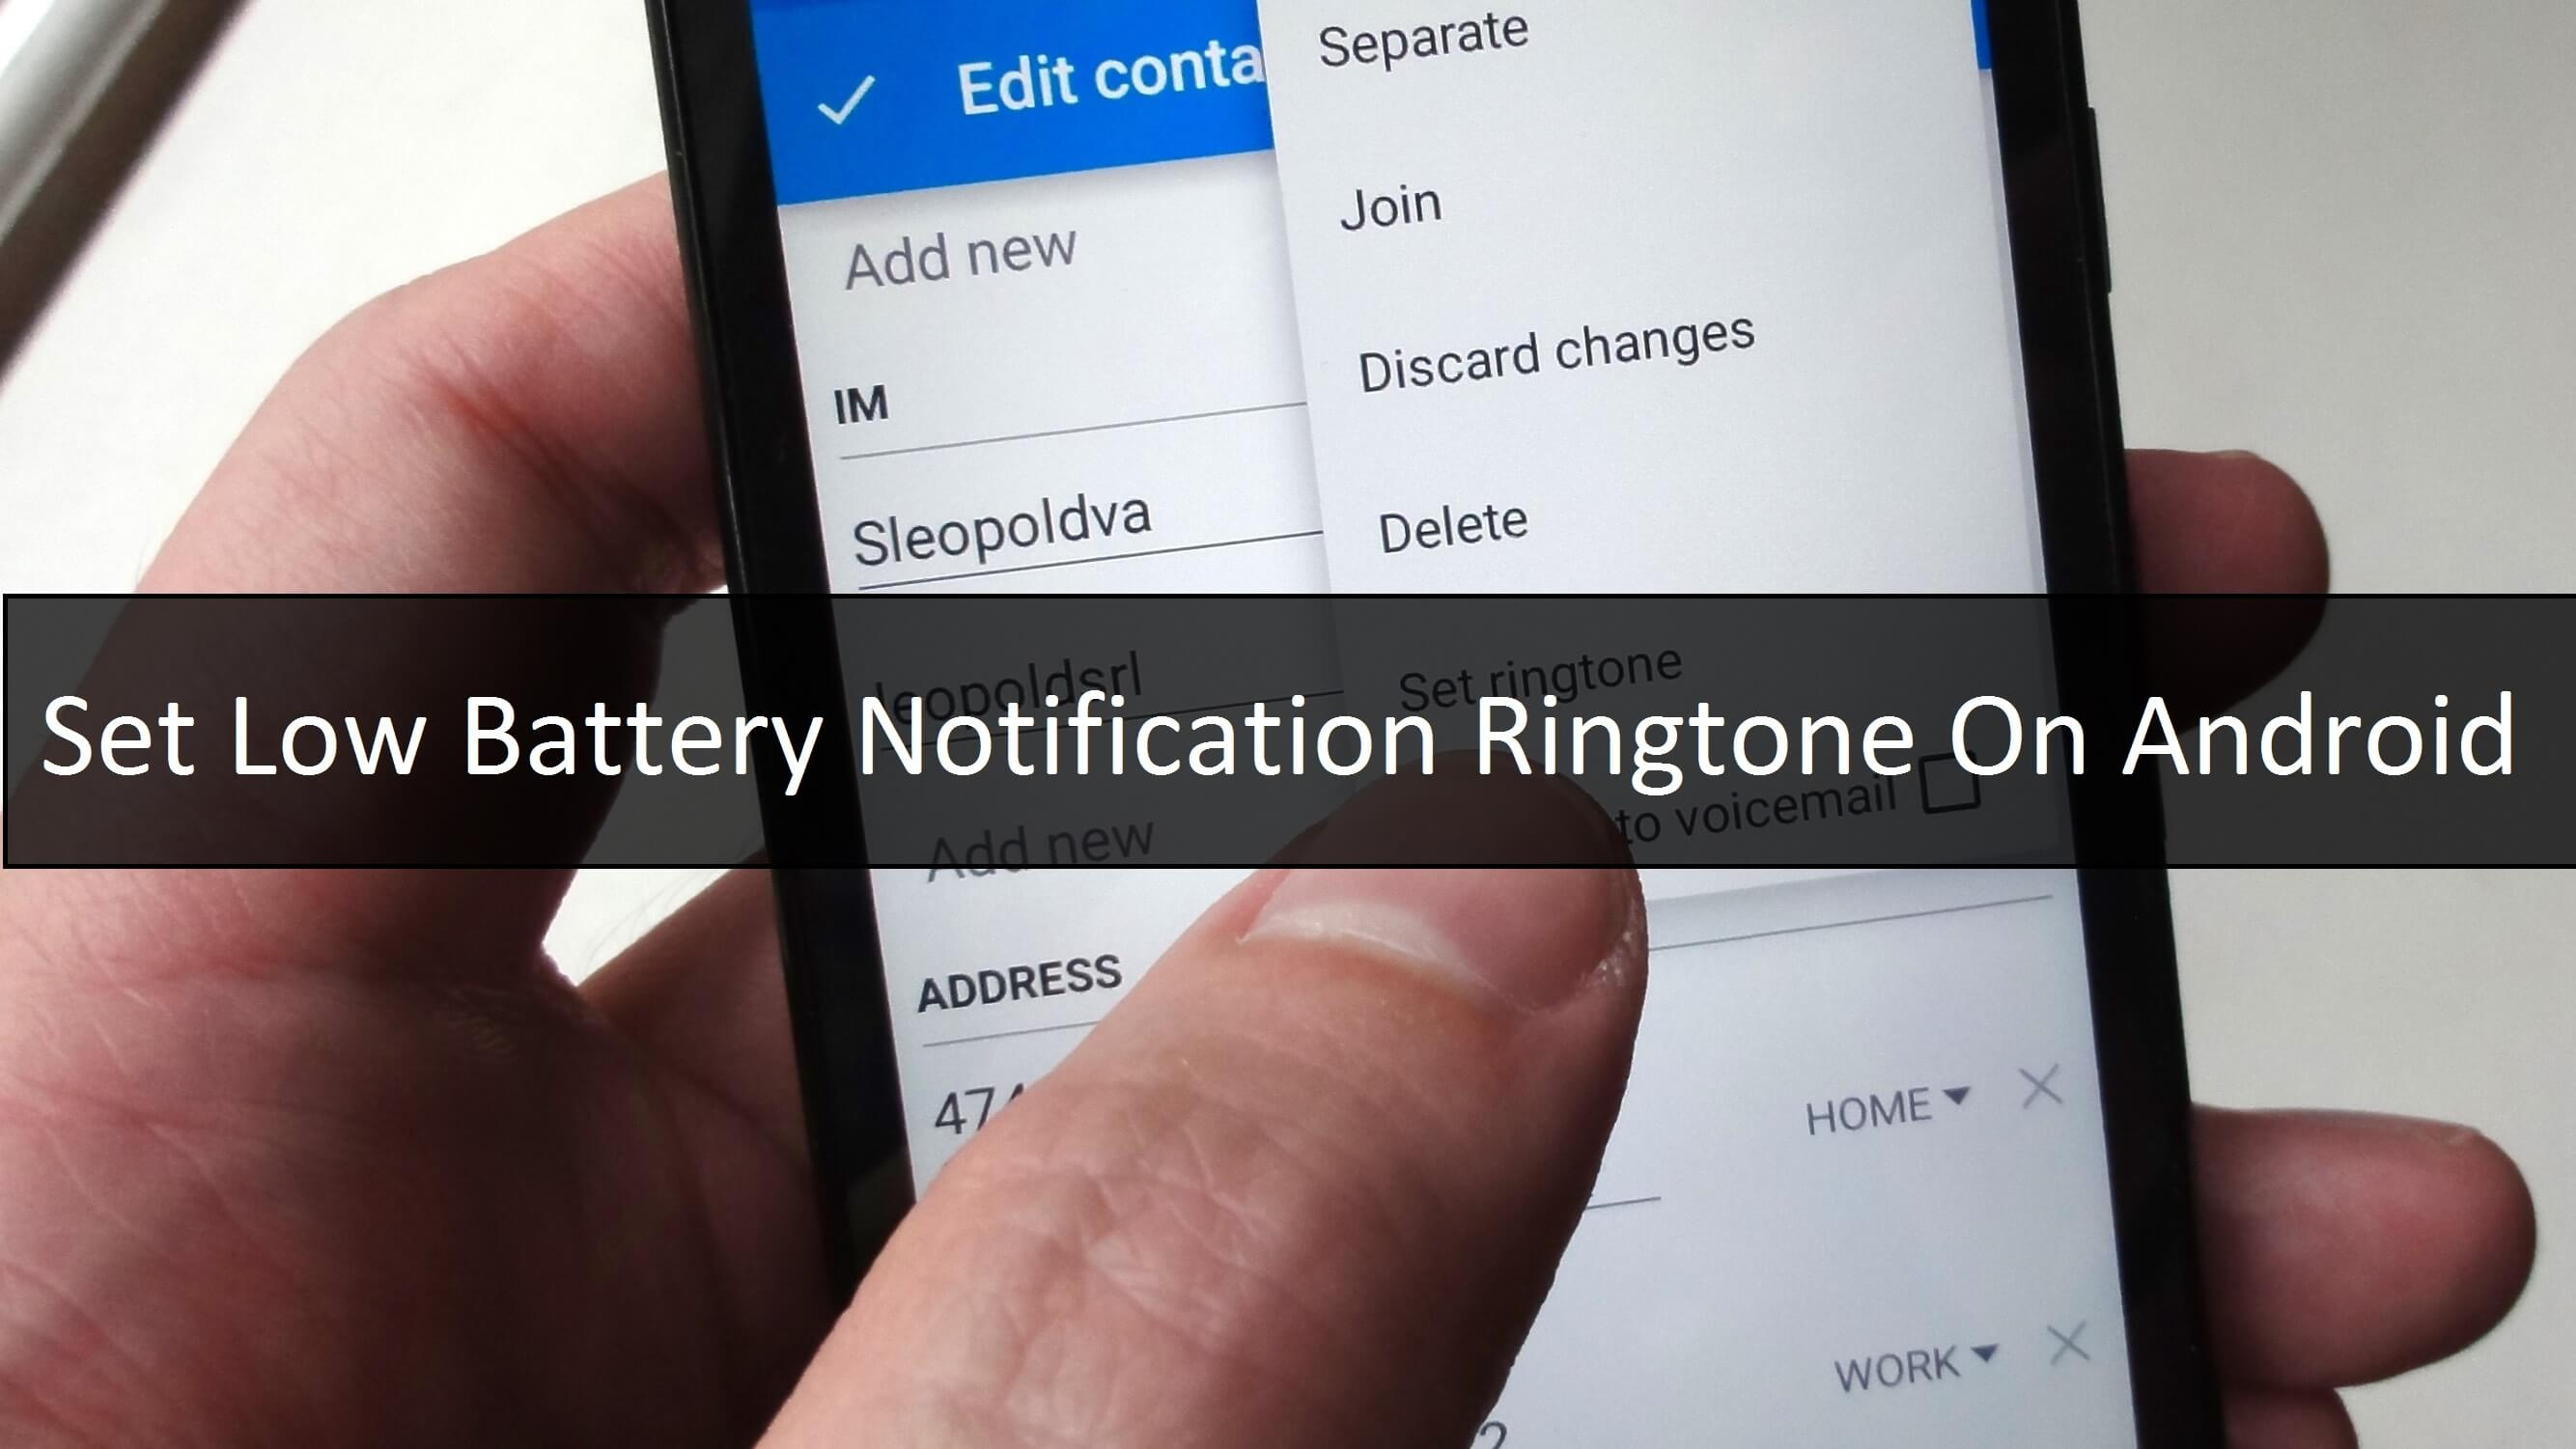 Set Low Battery Notification Ringtone